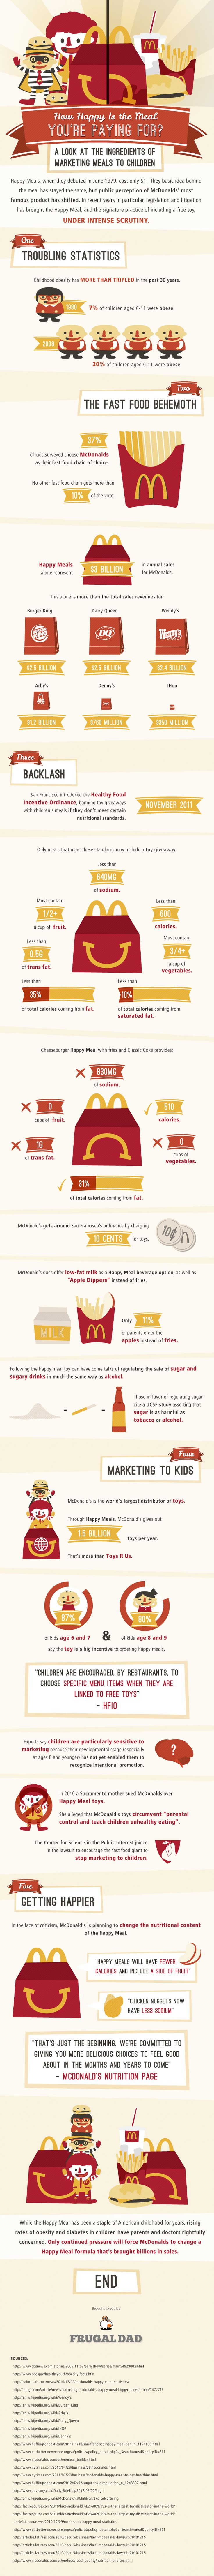 Shocking Facts About McDonalds